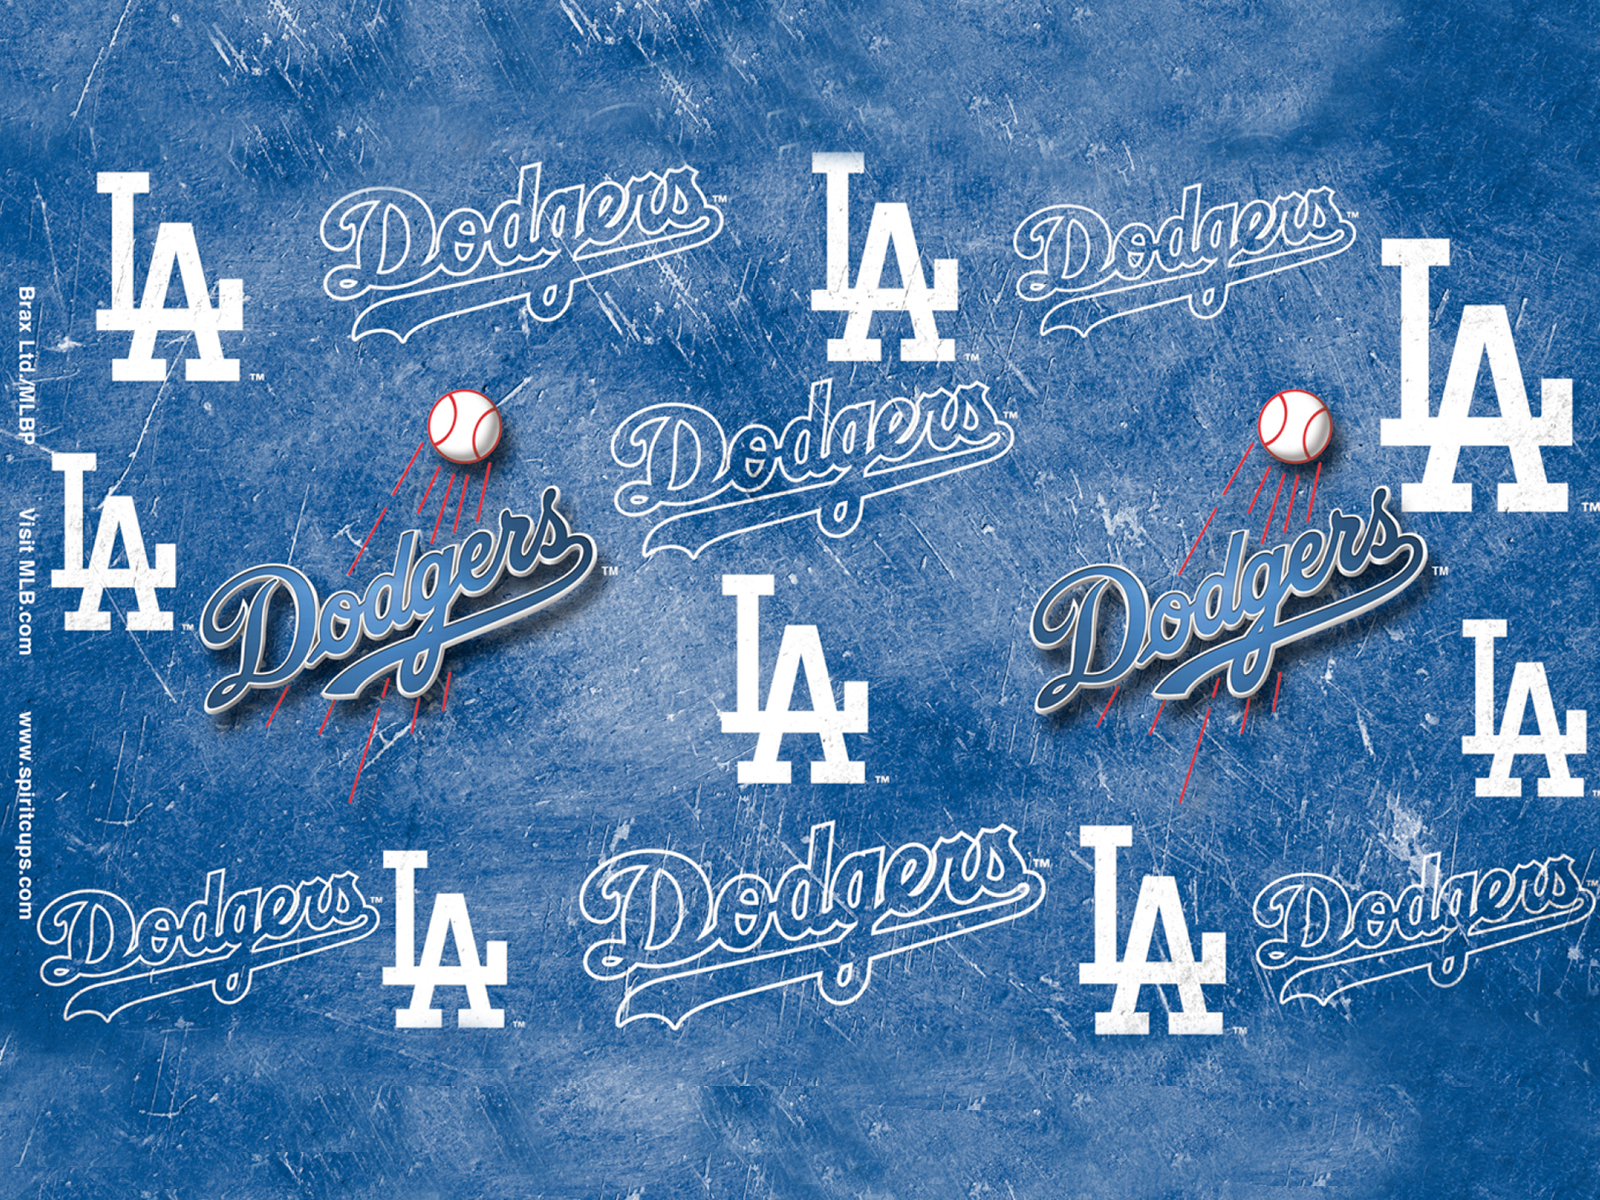 Los Angeles Dodgers Baseball Wallpaper Dodgers Wallpaper Los Angeles Dodgers Background 1600x1200 Wallpaper Teahub Io